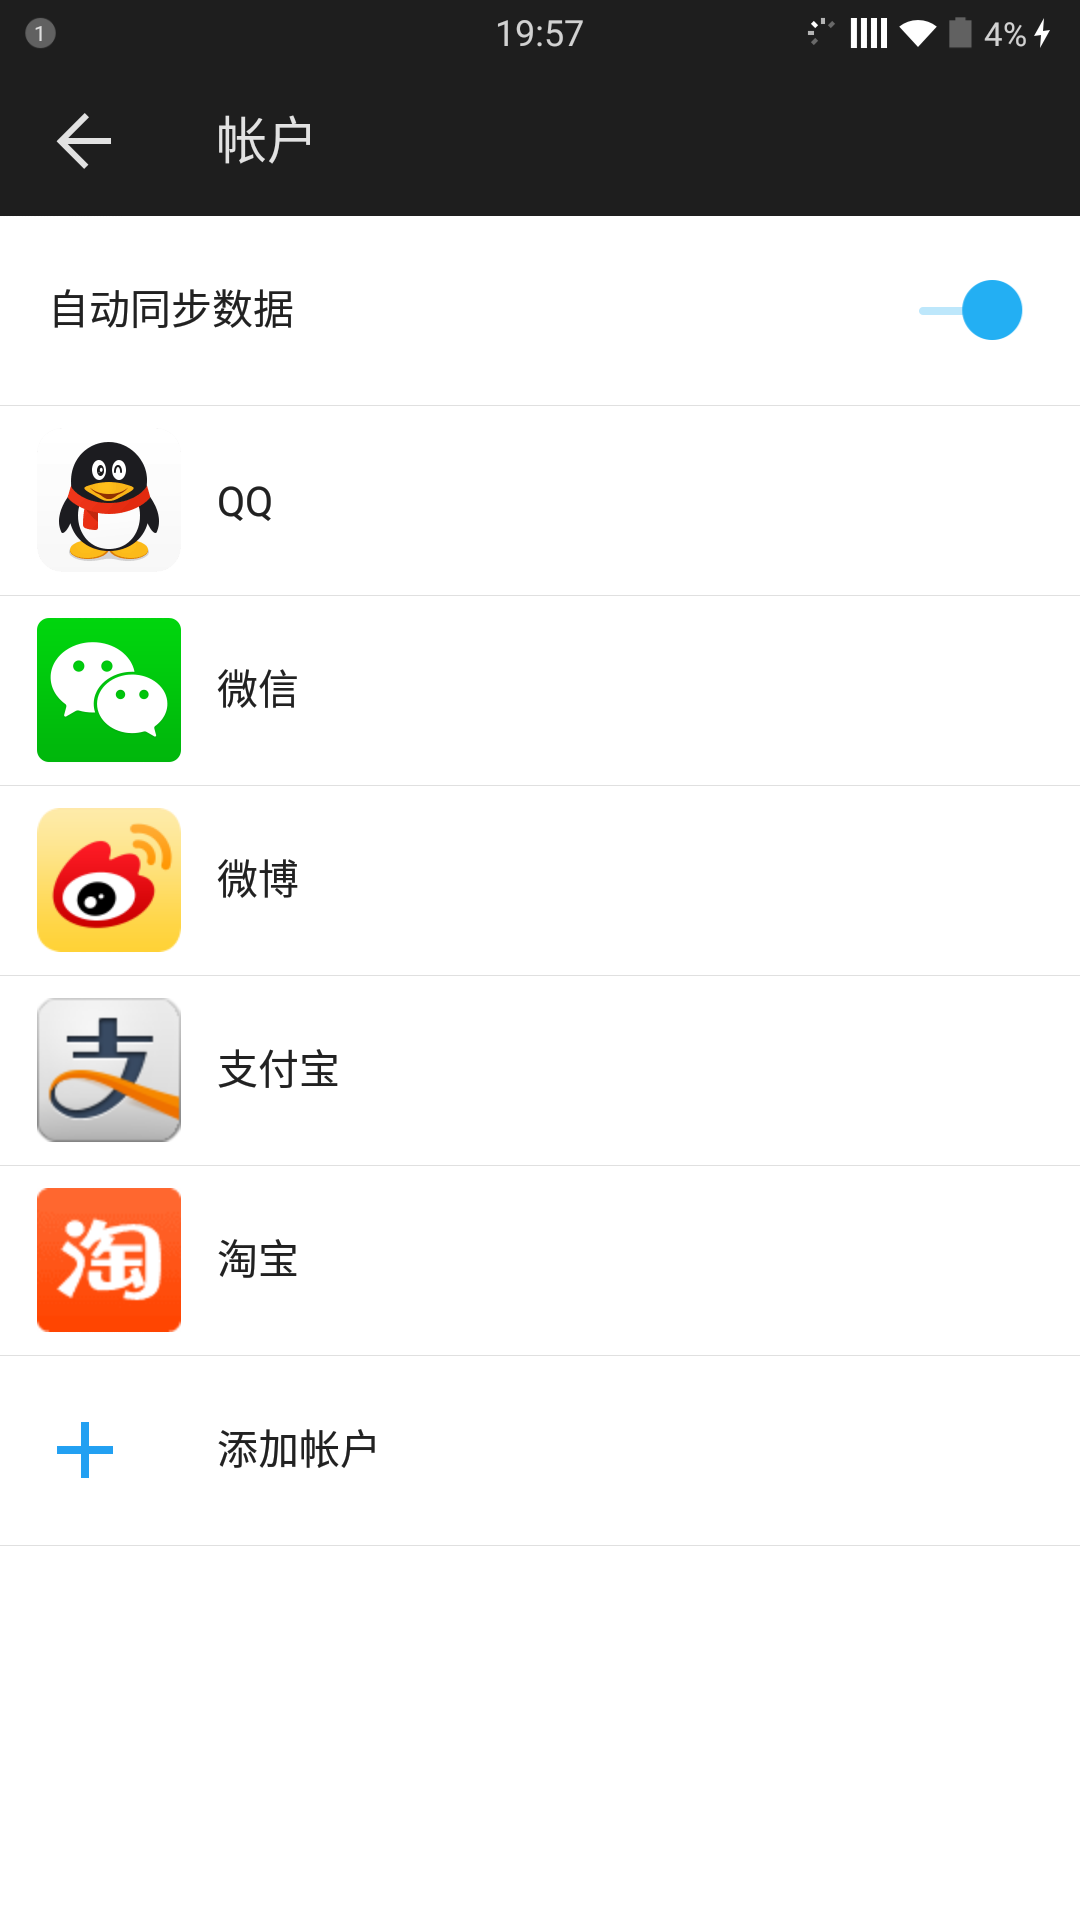 Screenshot_2015-07-17-19-57-16.png